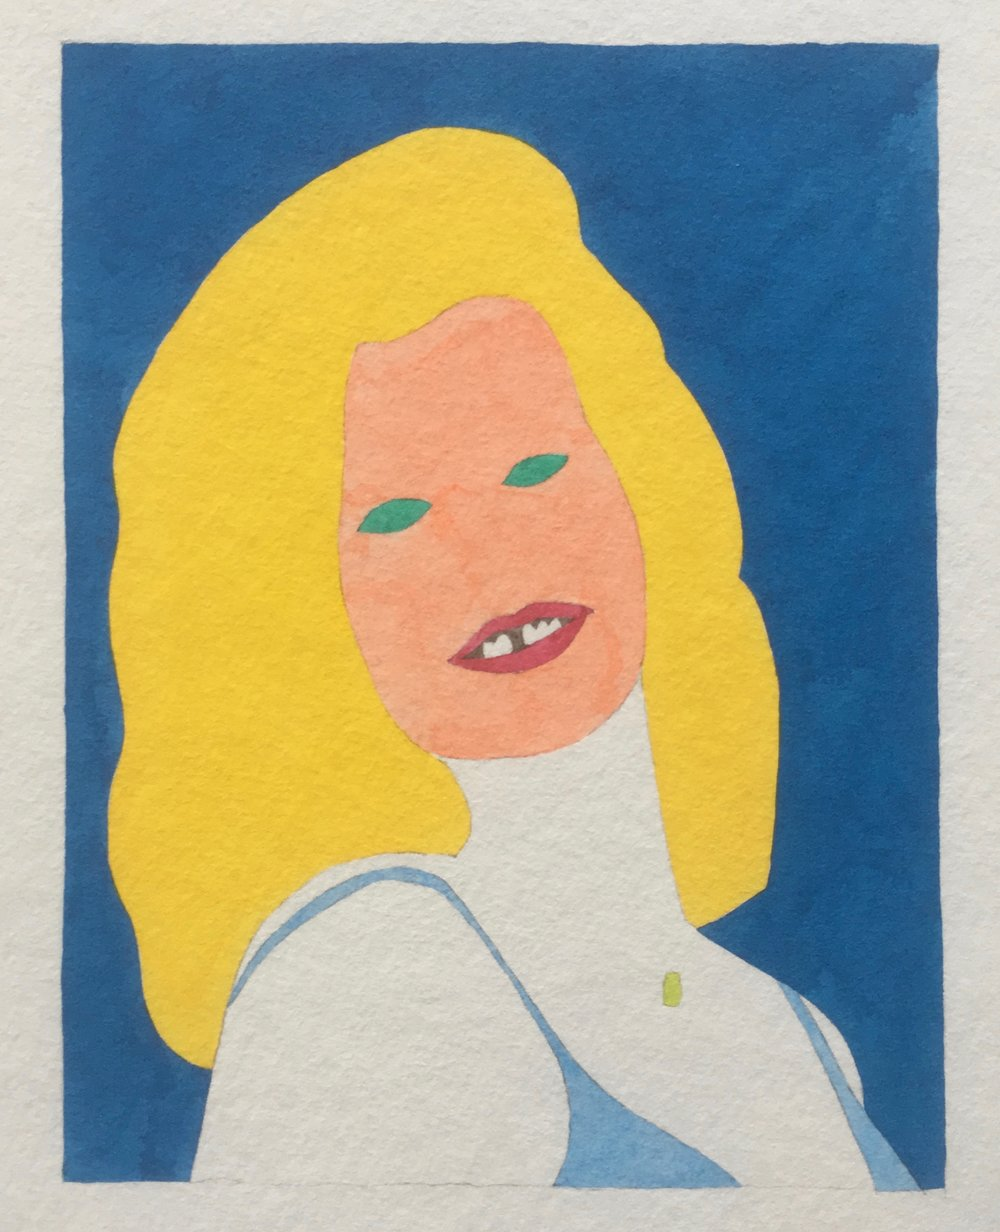 Wayne Youle  Carmen Rupe in the style of 60s popular culture,  2018 Acrylic ink on paper $1,800 incl. GST  _______